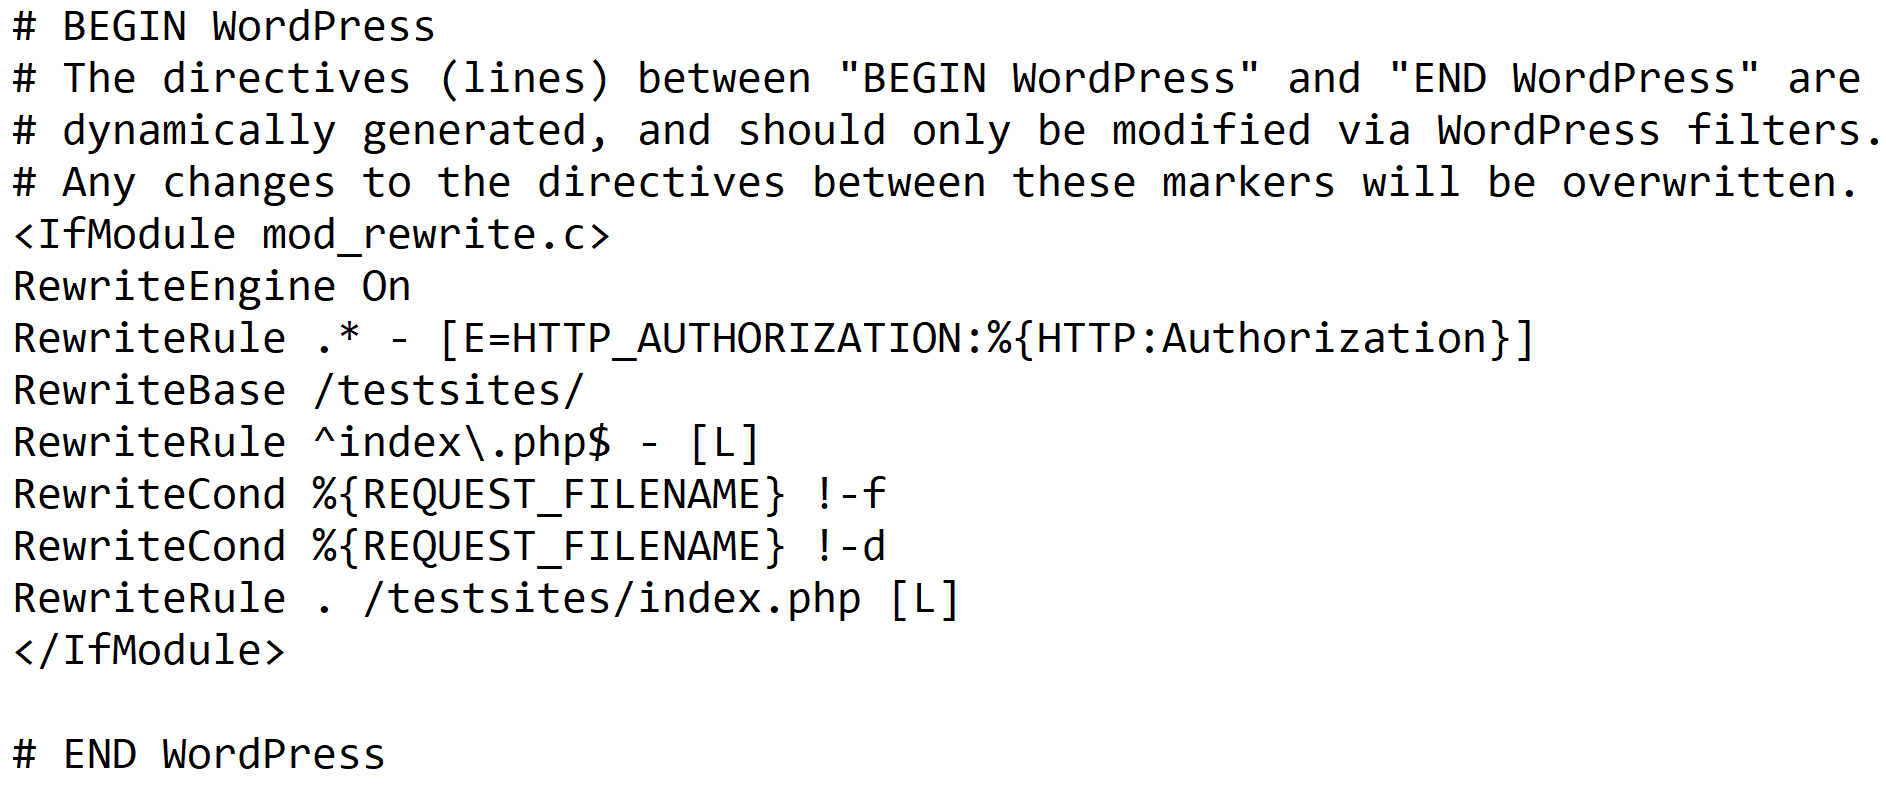 A .htaccess file, which can be edited to protect sites against XSS attacks.